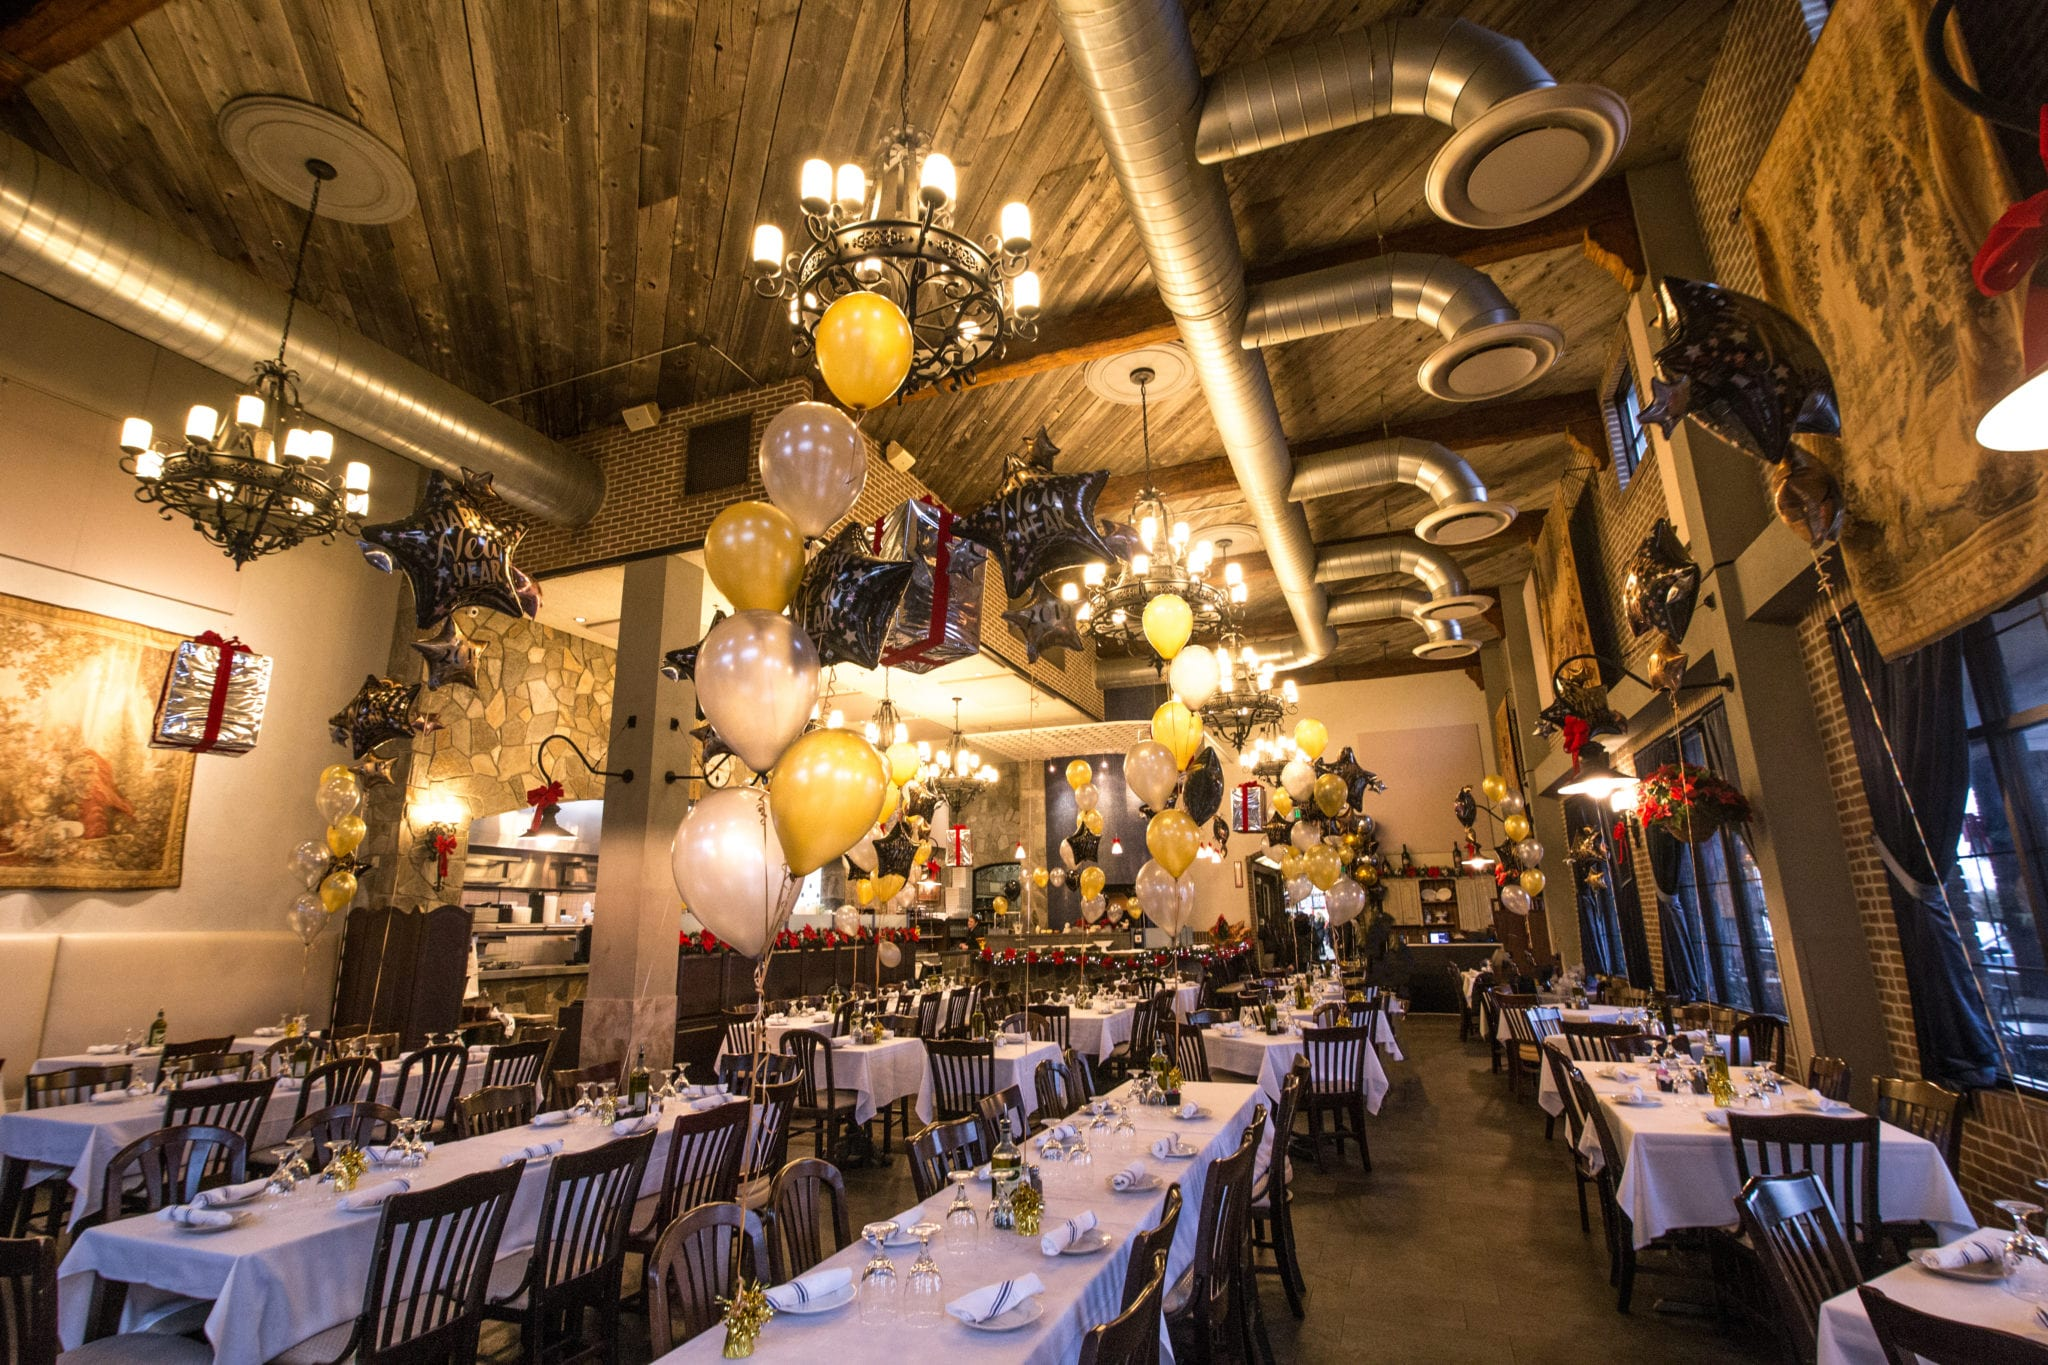 New Year's Eve with il Vecchio Café